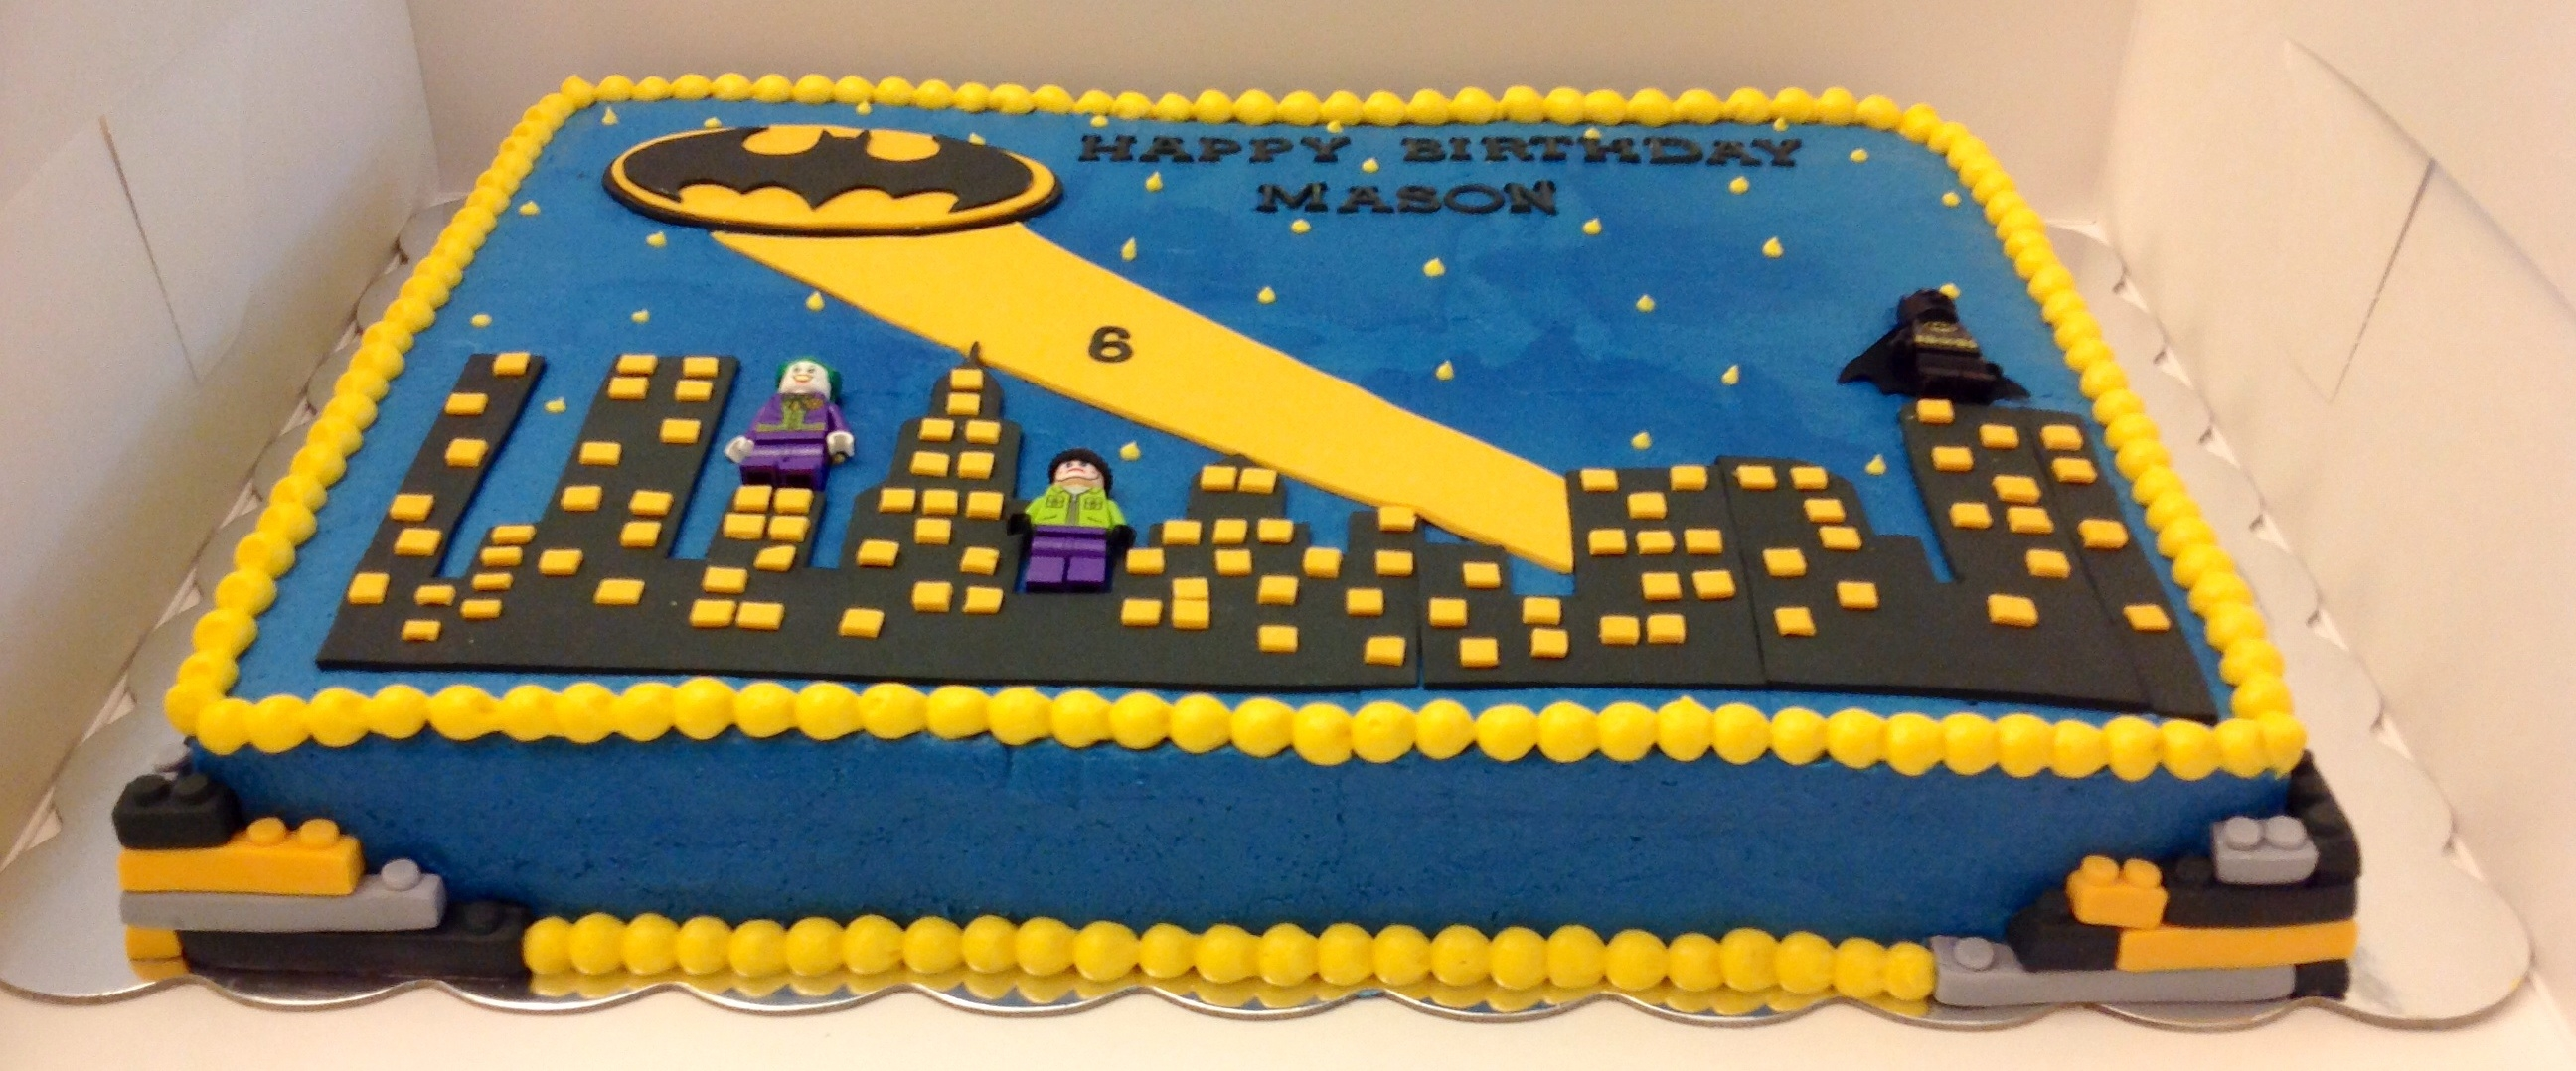 batman birthday sheet cake ; 900_8978140s18_batman-sheet